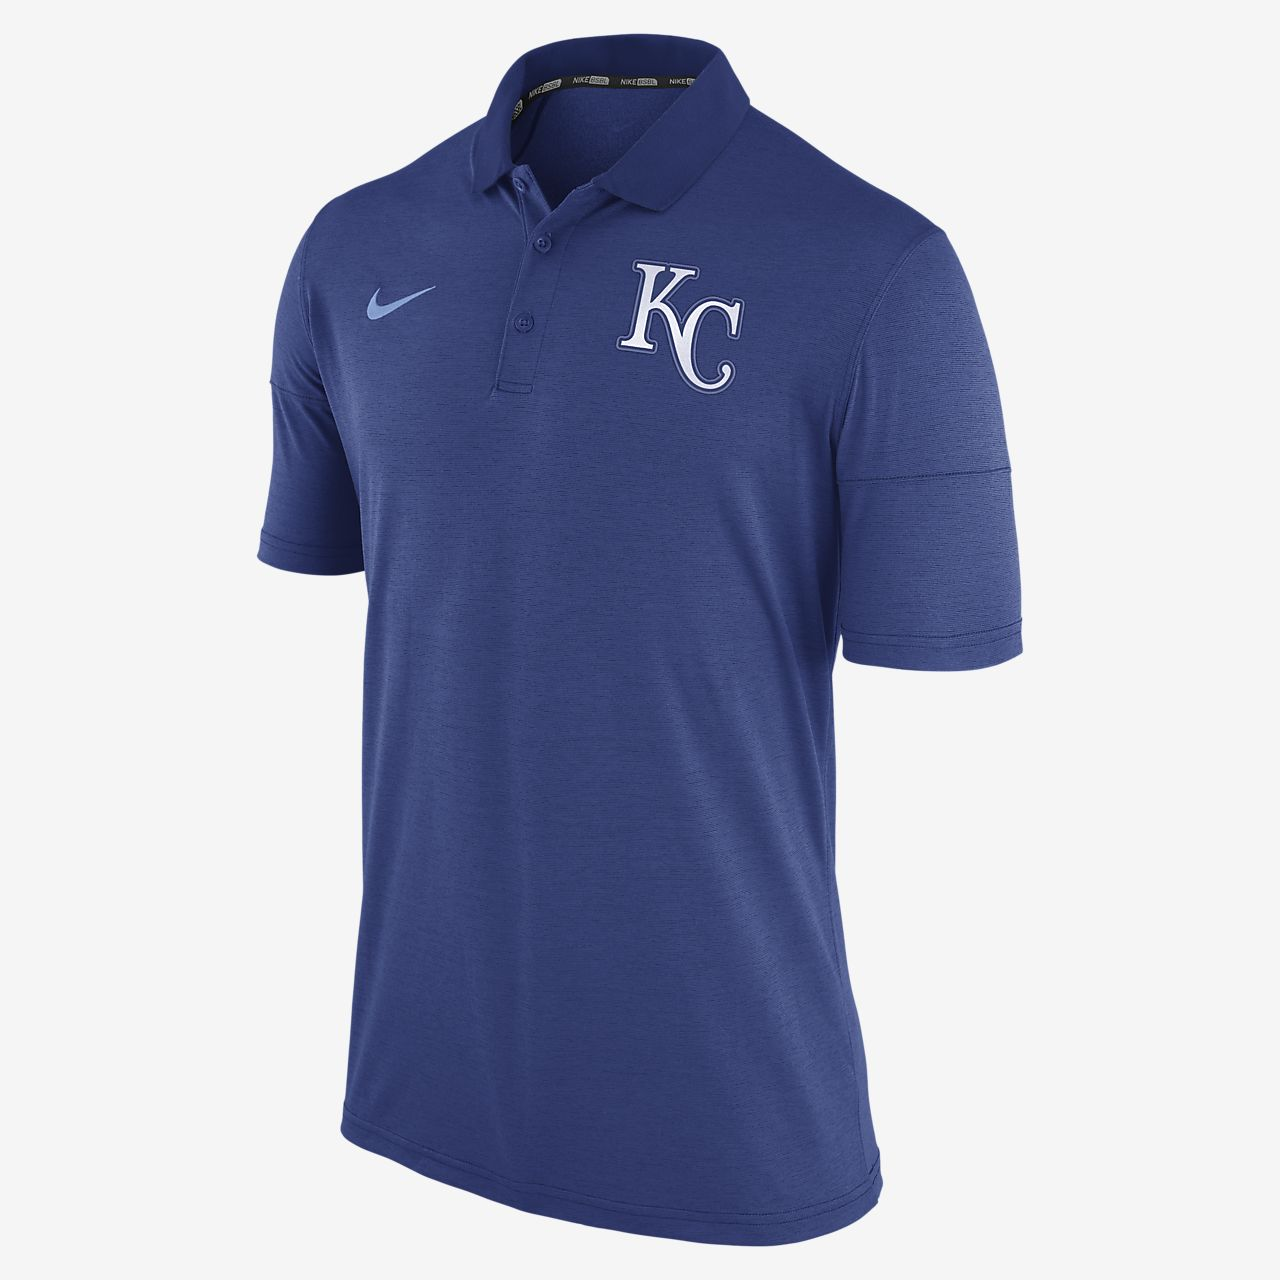 Nike (MLB Royals) Men's Polo